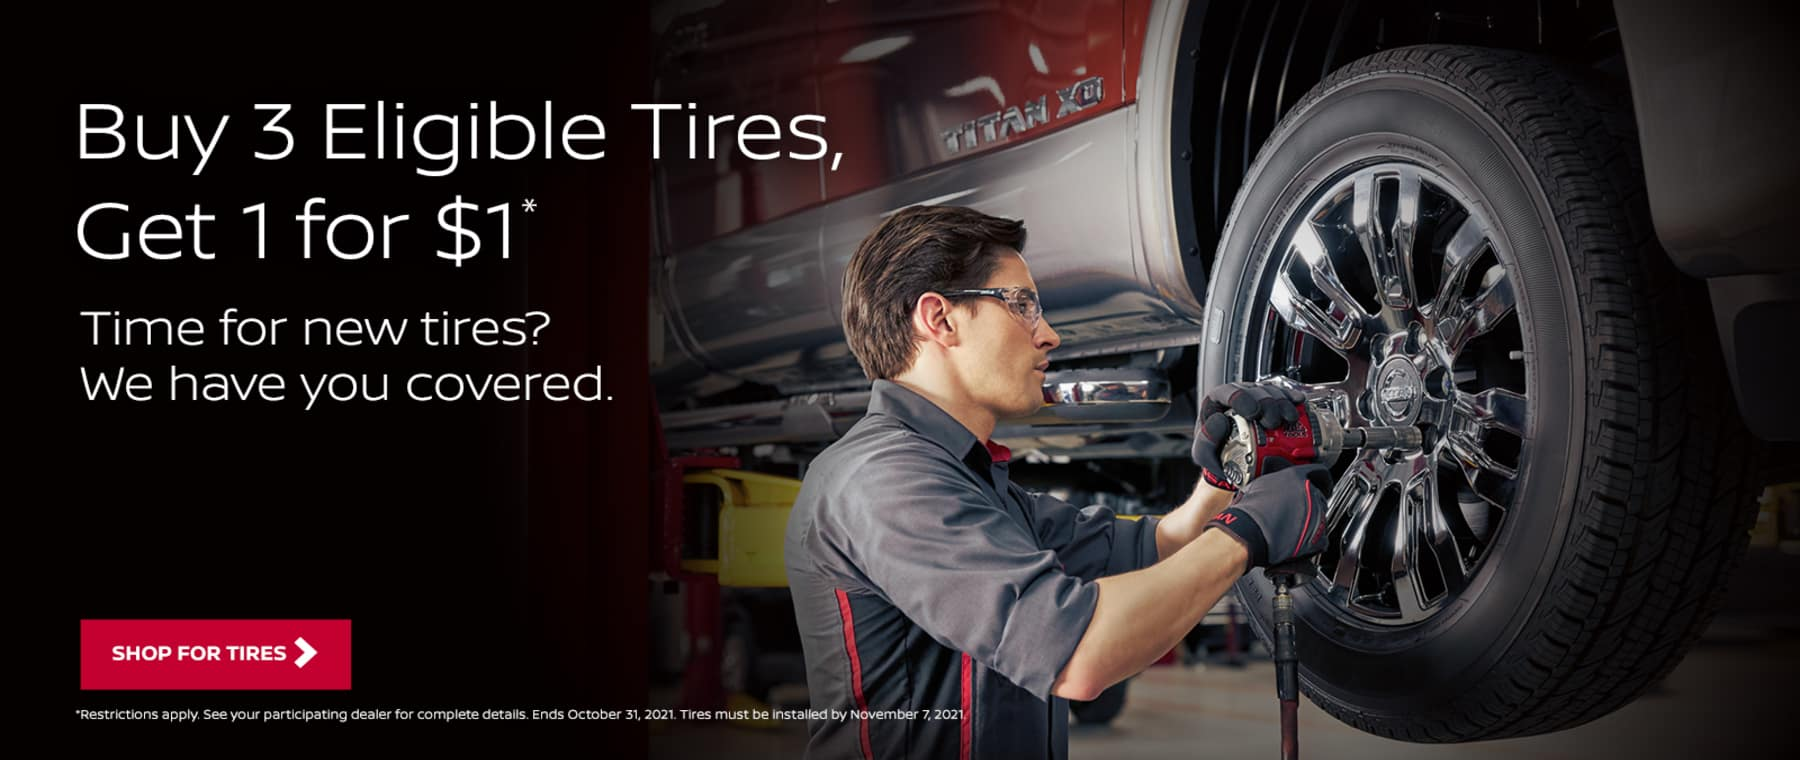 Buy 3 Tires get 1 for $1.00